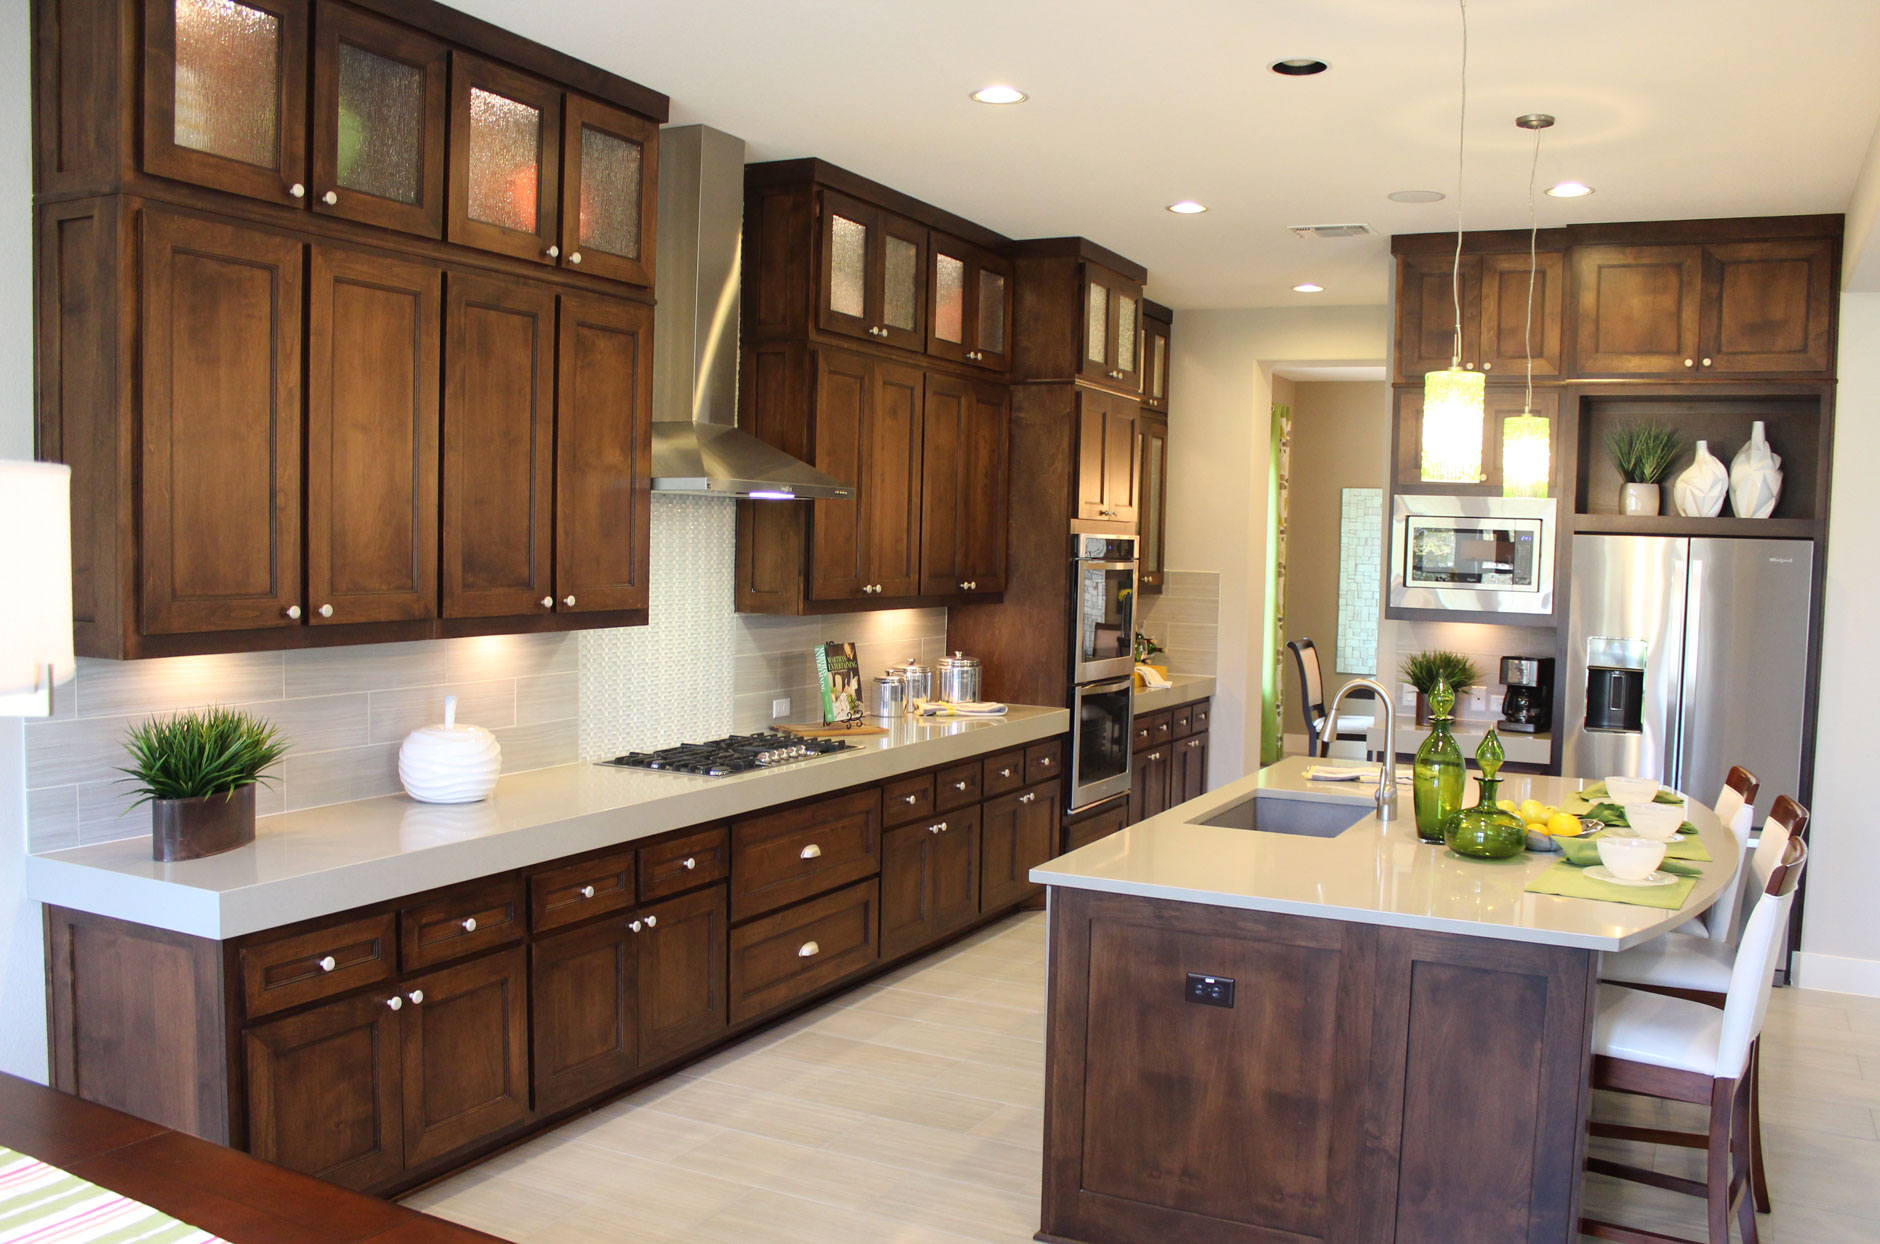 Kitchen cabinets by Burrows Cabinets with modern crown molding and ...